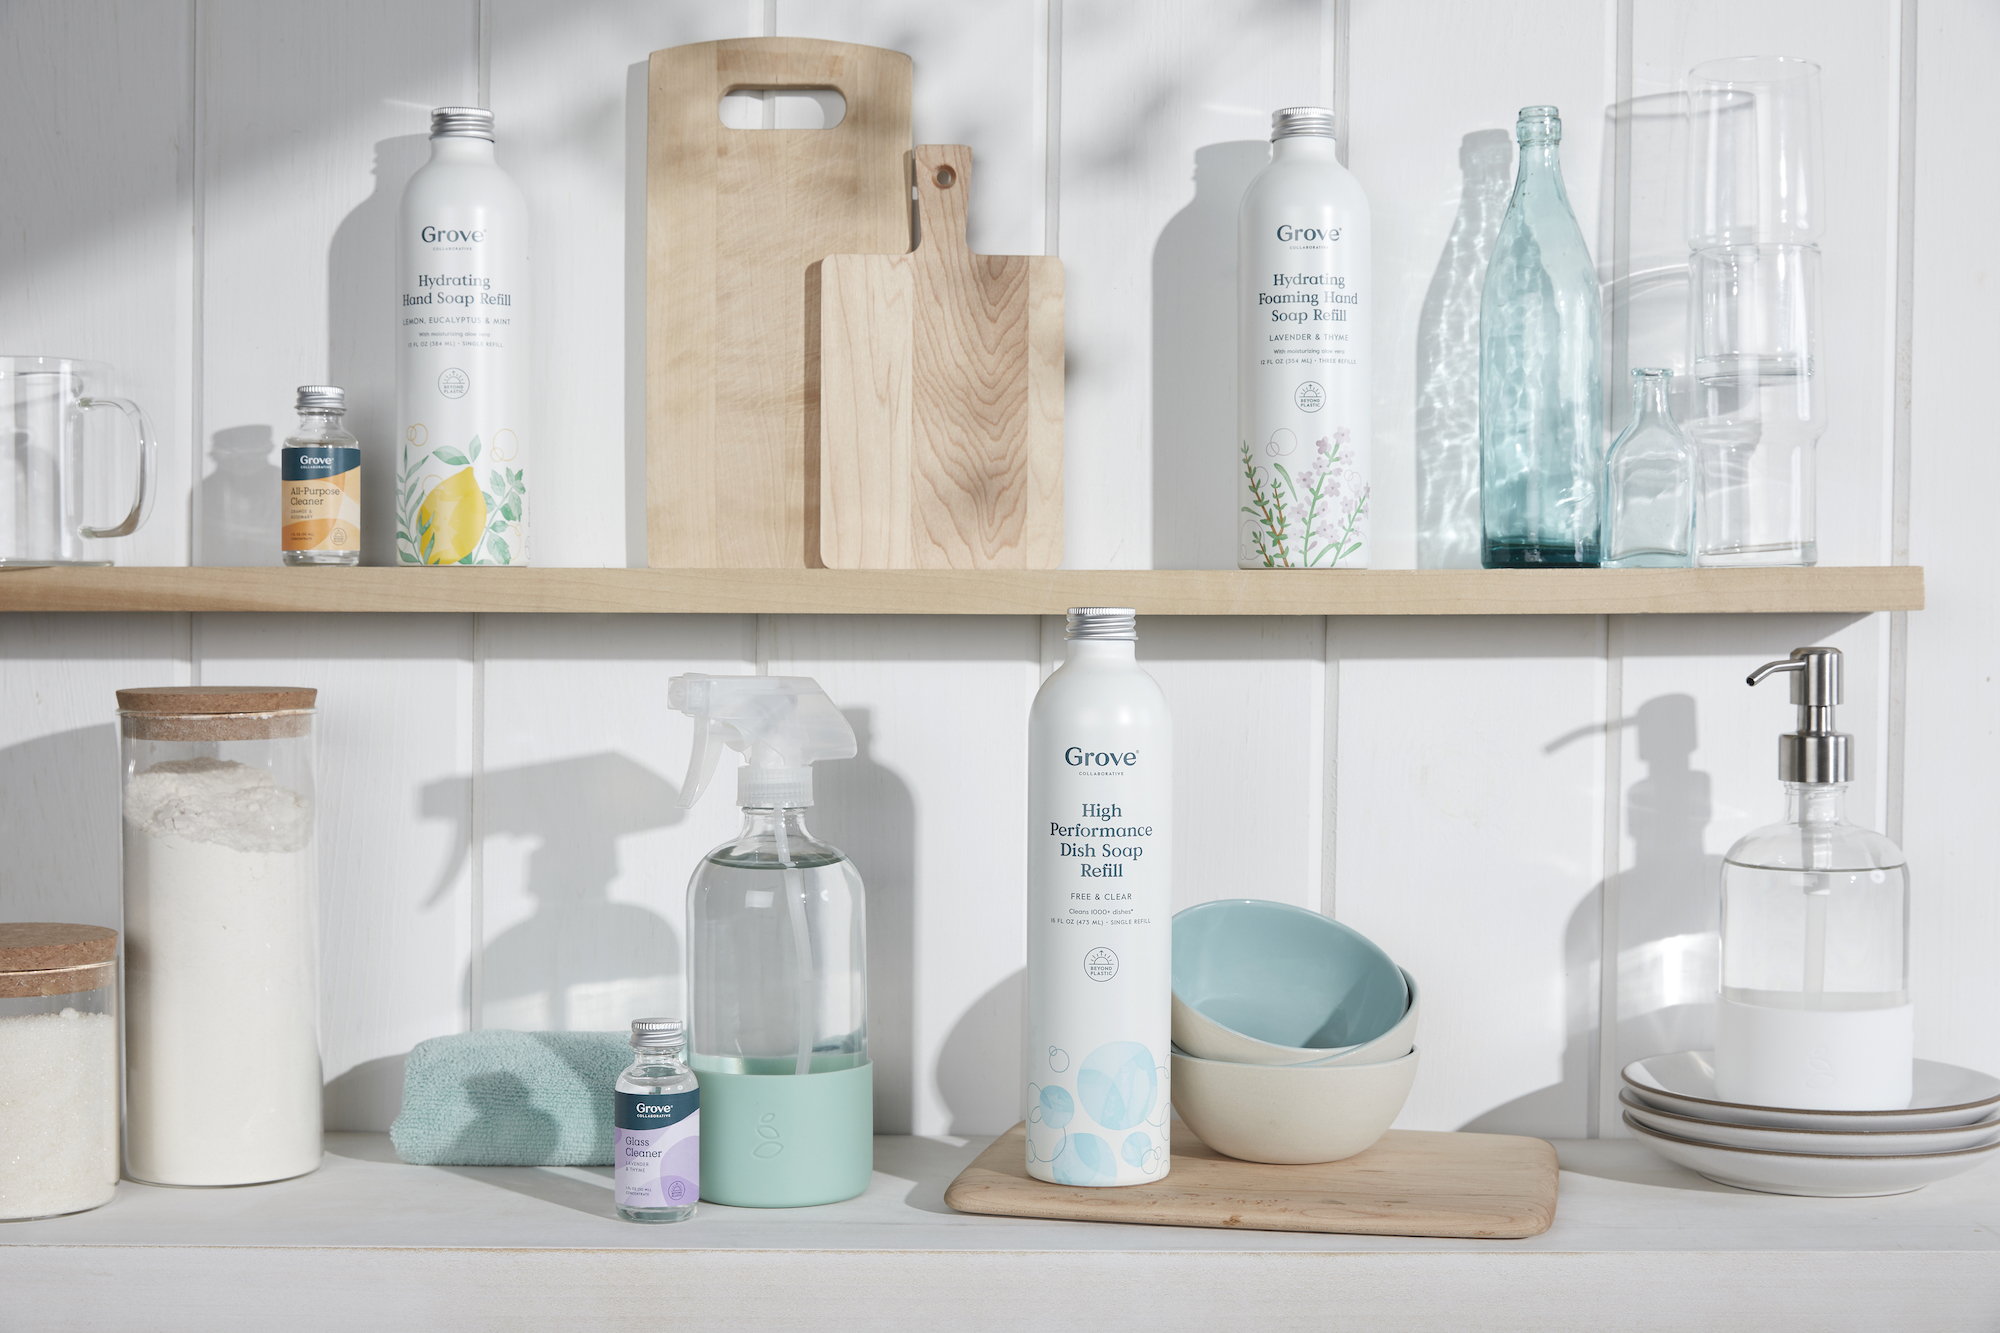 Grove Collaborative Beyond Plastic products on shelves